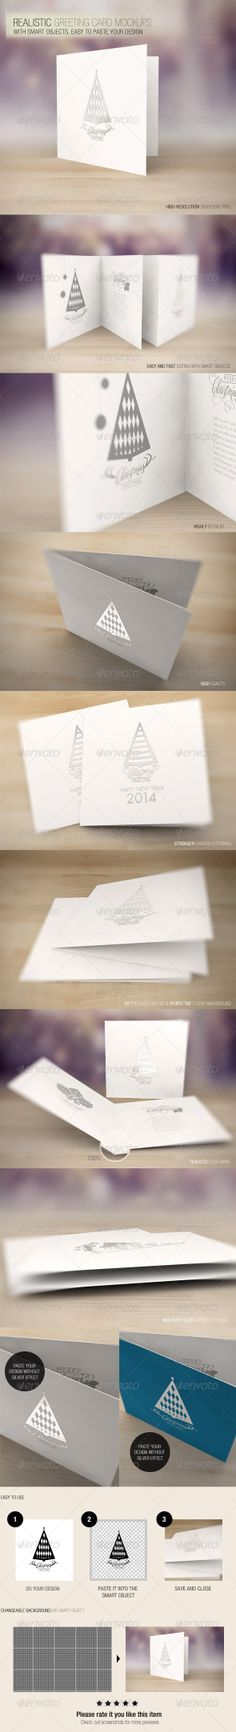 Realistic Greeting Card Mockups  7 Pre made psd file Included Silver Effect (Optional)/li> Perpective Floor/ Background High resolution 3000×2000px Editable via smart object Changeable background via smart object Realistic Depth of Field Highly detailed Fully layered High quality